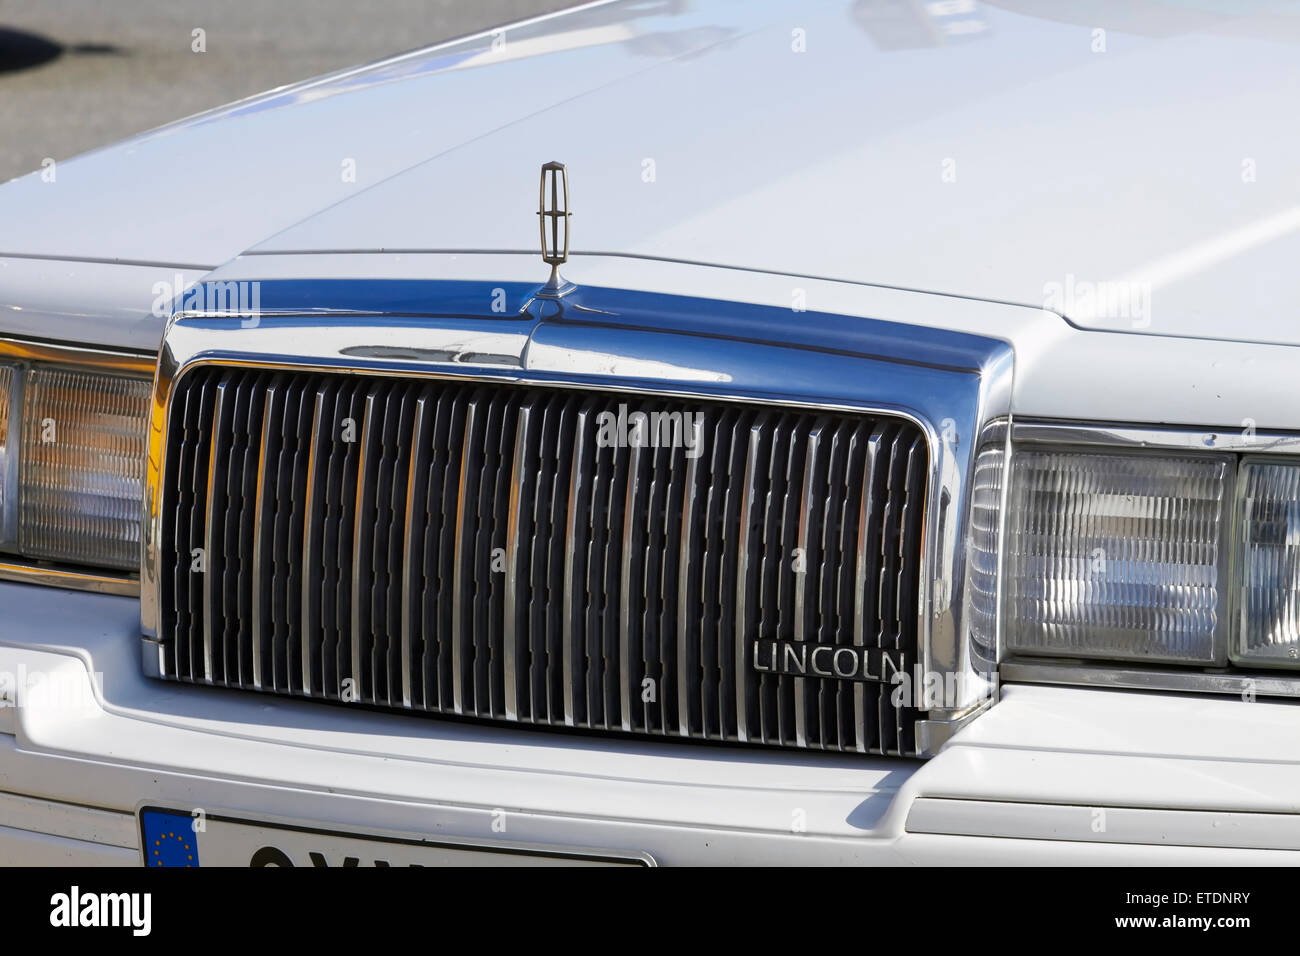 Limousine Lincoln Stock Photos Limousine Lincoln Stock Images Alamy